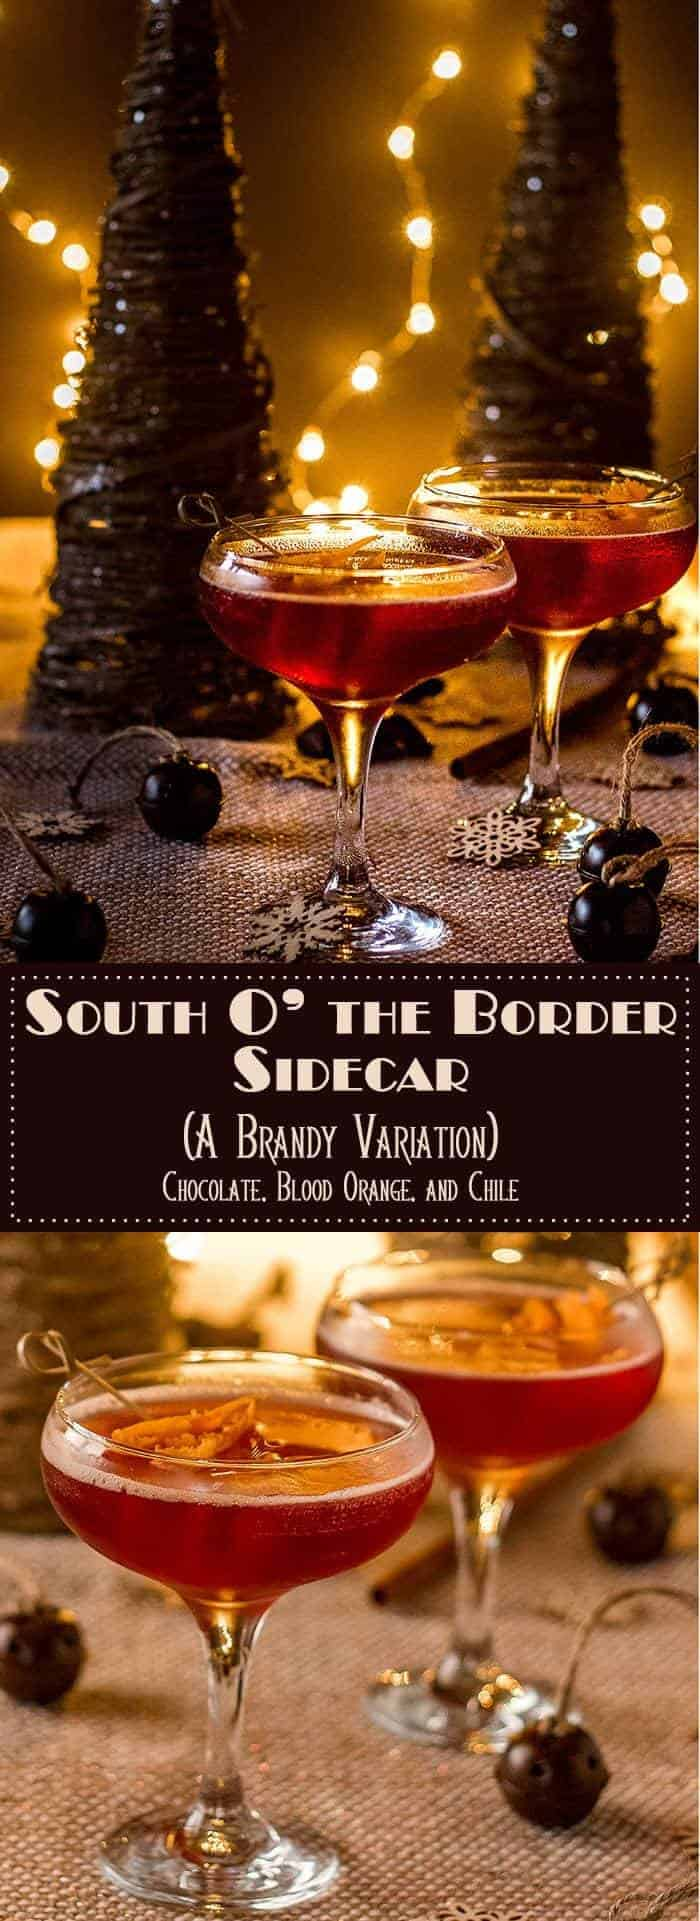 South O' the Border Sidecar Pin - Blood orange liqueur, chocolate chile liqueur, and brandy get shaken and topped with mole bitters... A festive and zesty variation on the classic sidecar! #sidecar #festivecocktail #Christmascocktail #cocktails #brandycocktails